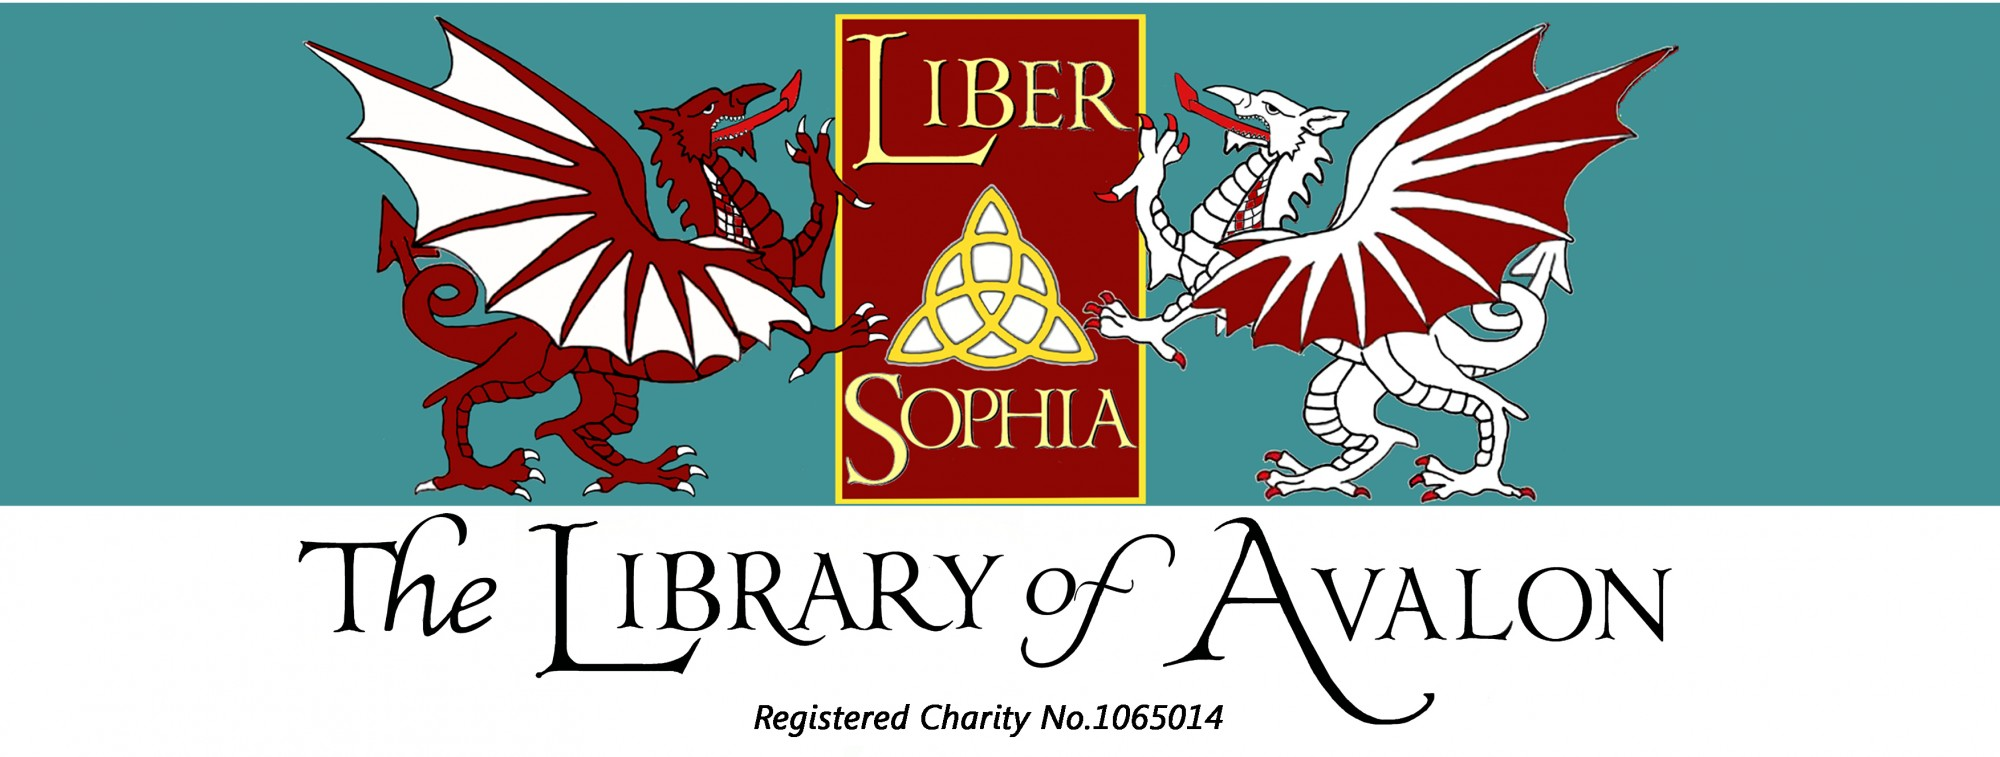 Library of Avalon | Probably the only publicly-accessible